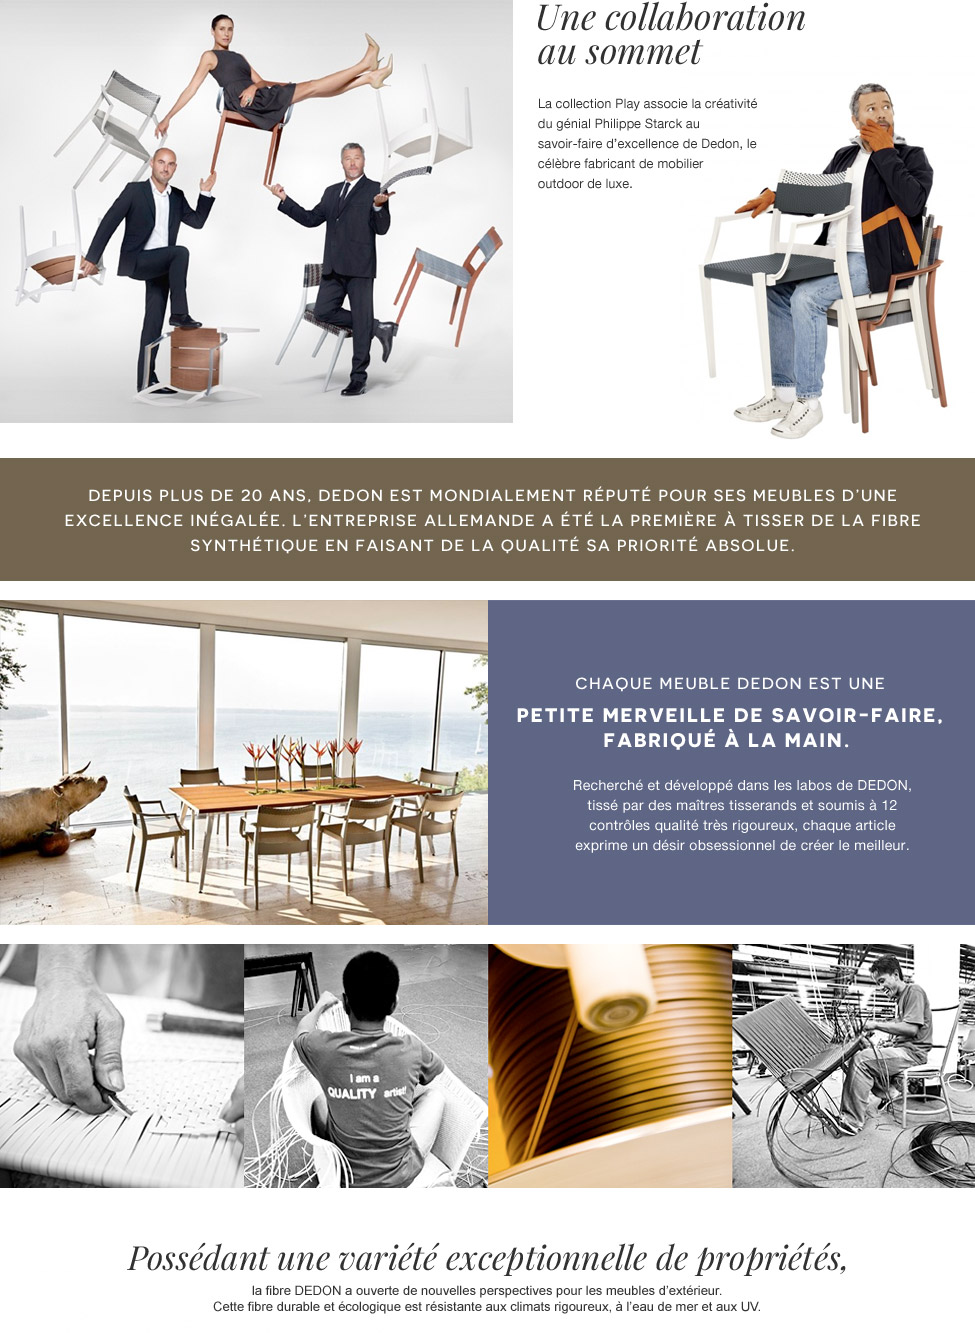 Play with Dedon & Philippe Starck